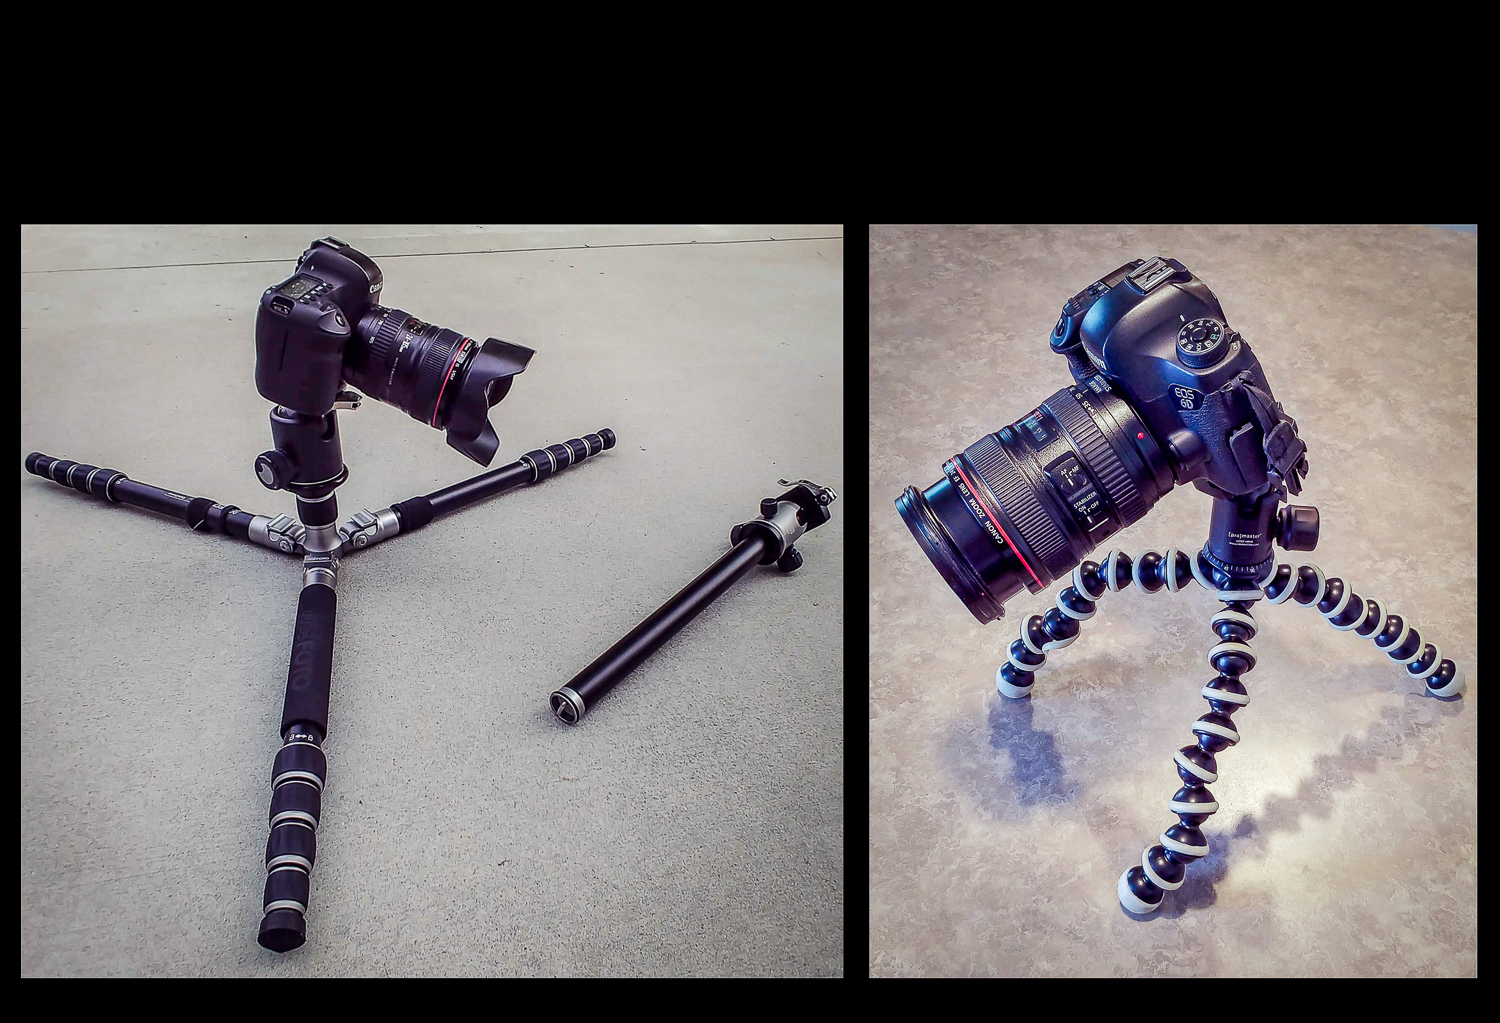 Different ways to shoot low-angle photos and still use a tripod.